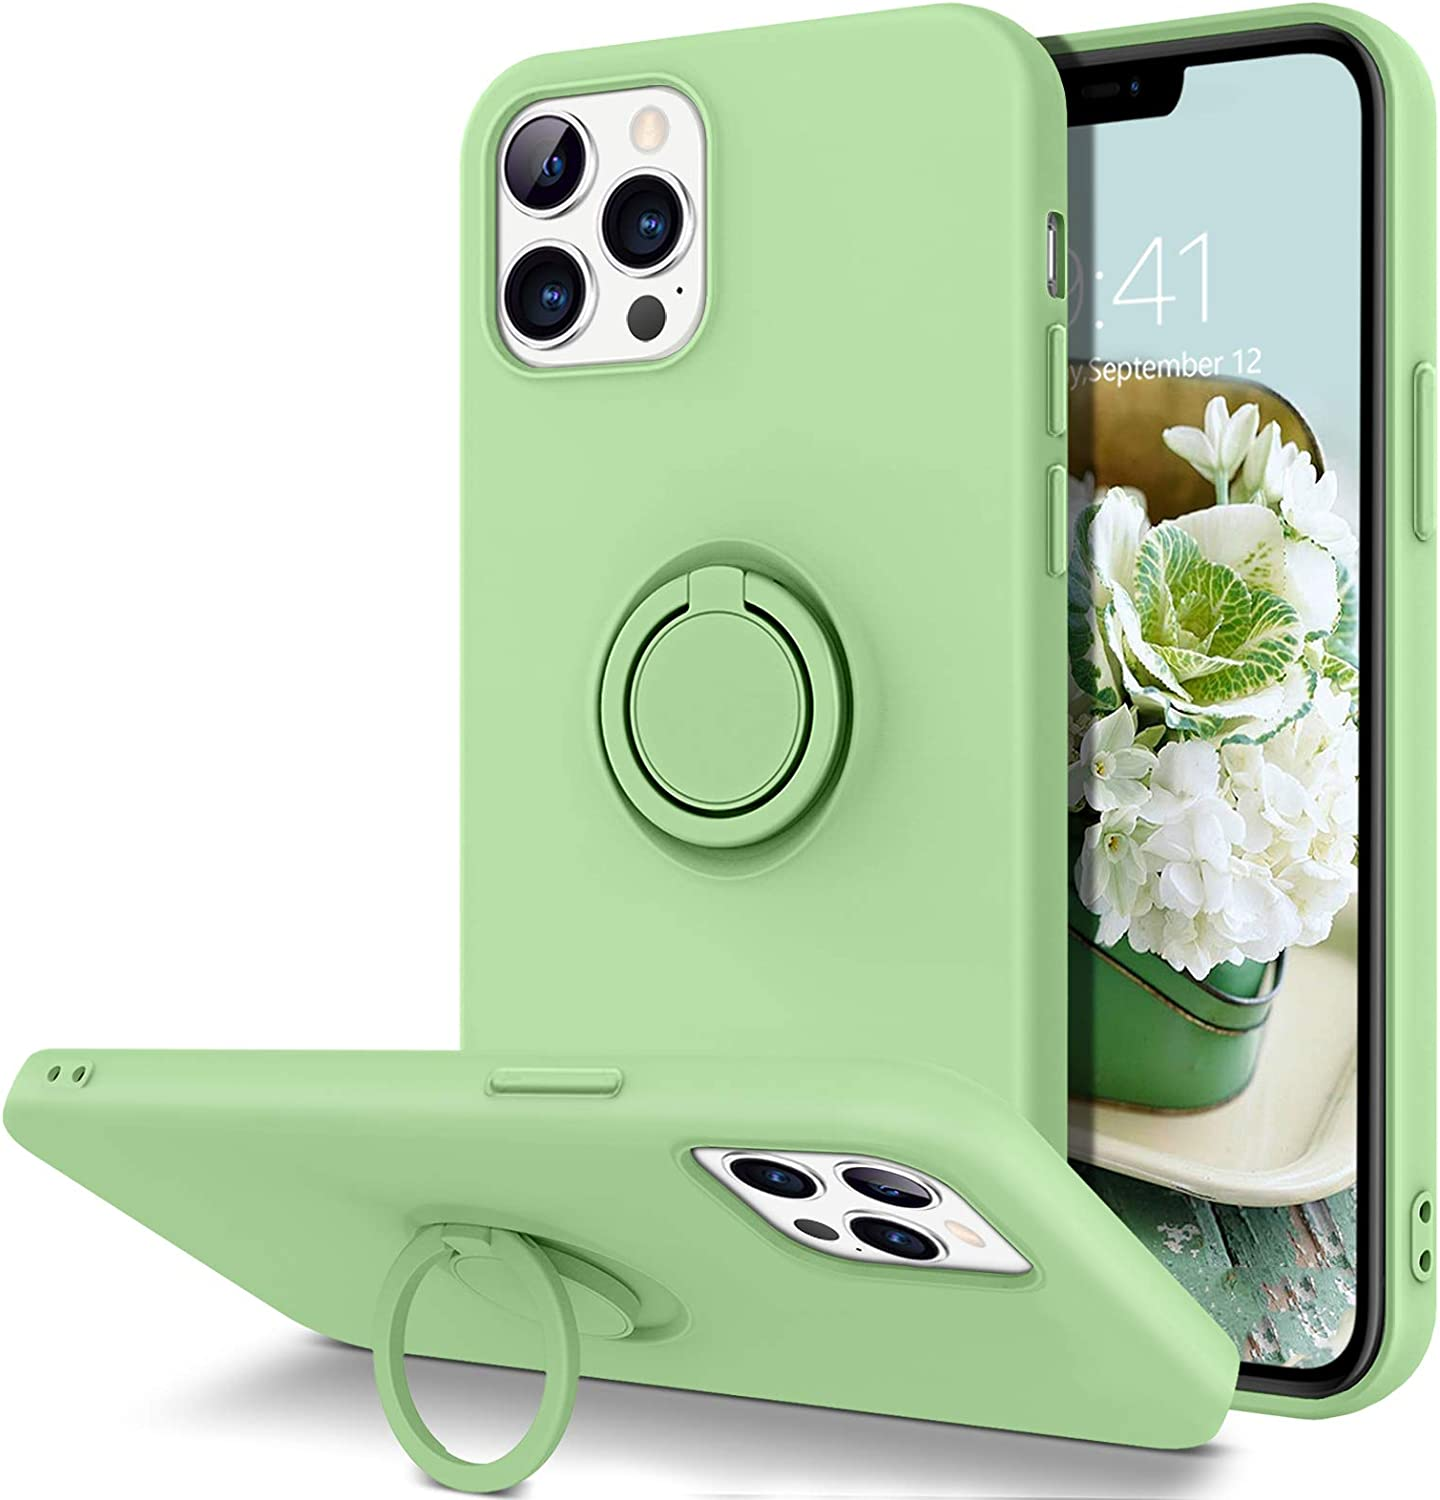 GUAGUA Compatible with iPhone 12/12 Pro Case 5G 6.1 Inch Liquid Silicone with Ring Holder Kickstand Soft Gel Rubber Microfiber Lining Cushion Slim Protective Cover for iPhone 12 Pro/12 Matcha Green